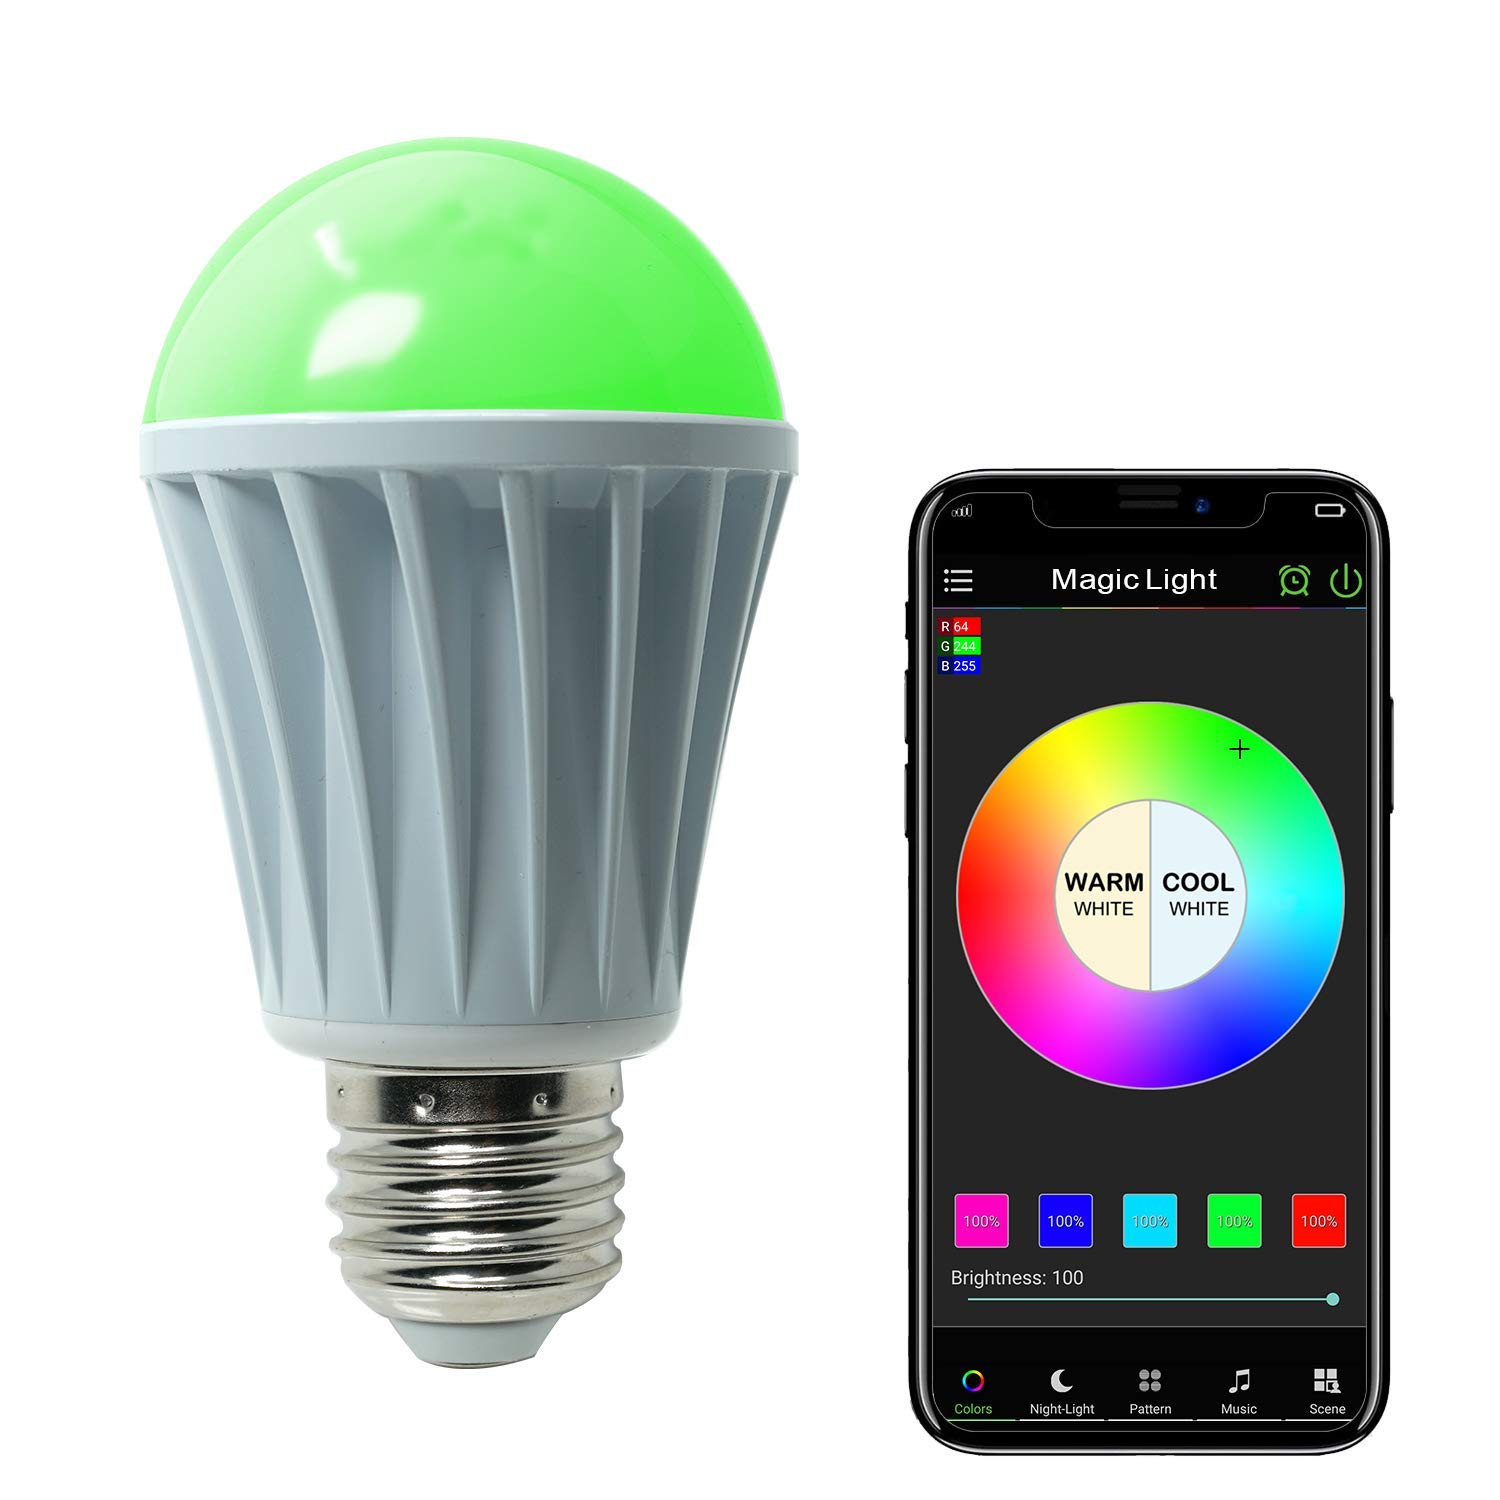 MagicLight WiFi Controlled LED Sunrise Wake Up Lights - 60w Equivalent Dimmable Multicolored Full Spectrum Bulb - Compatible with Alexa & Google Home Assistant